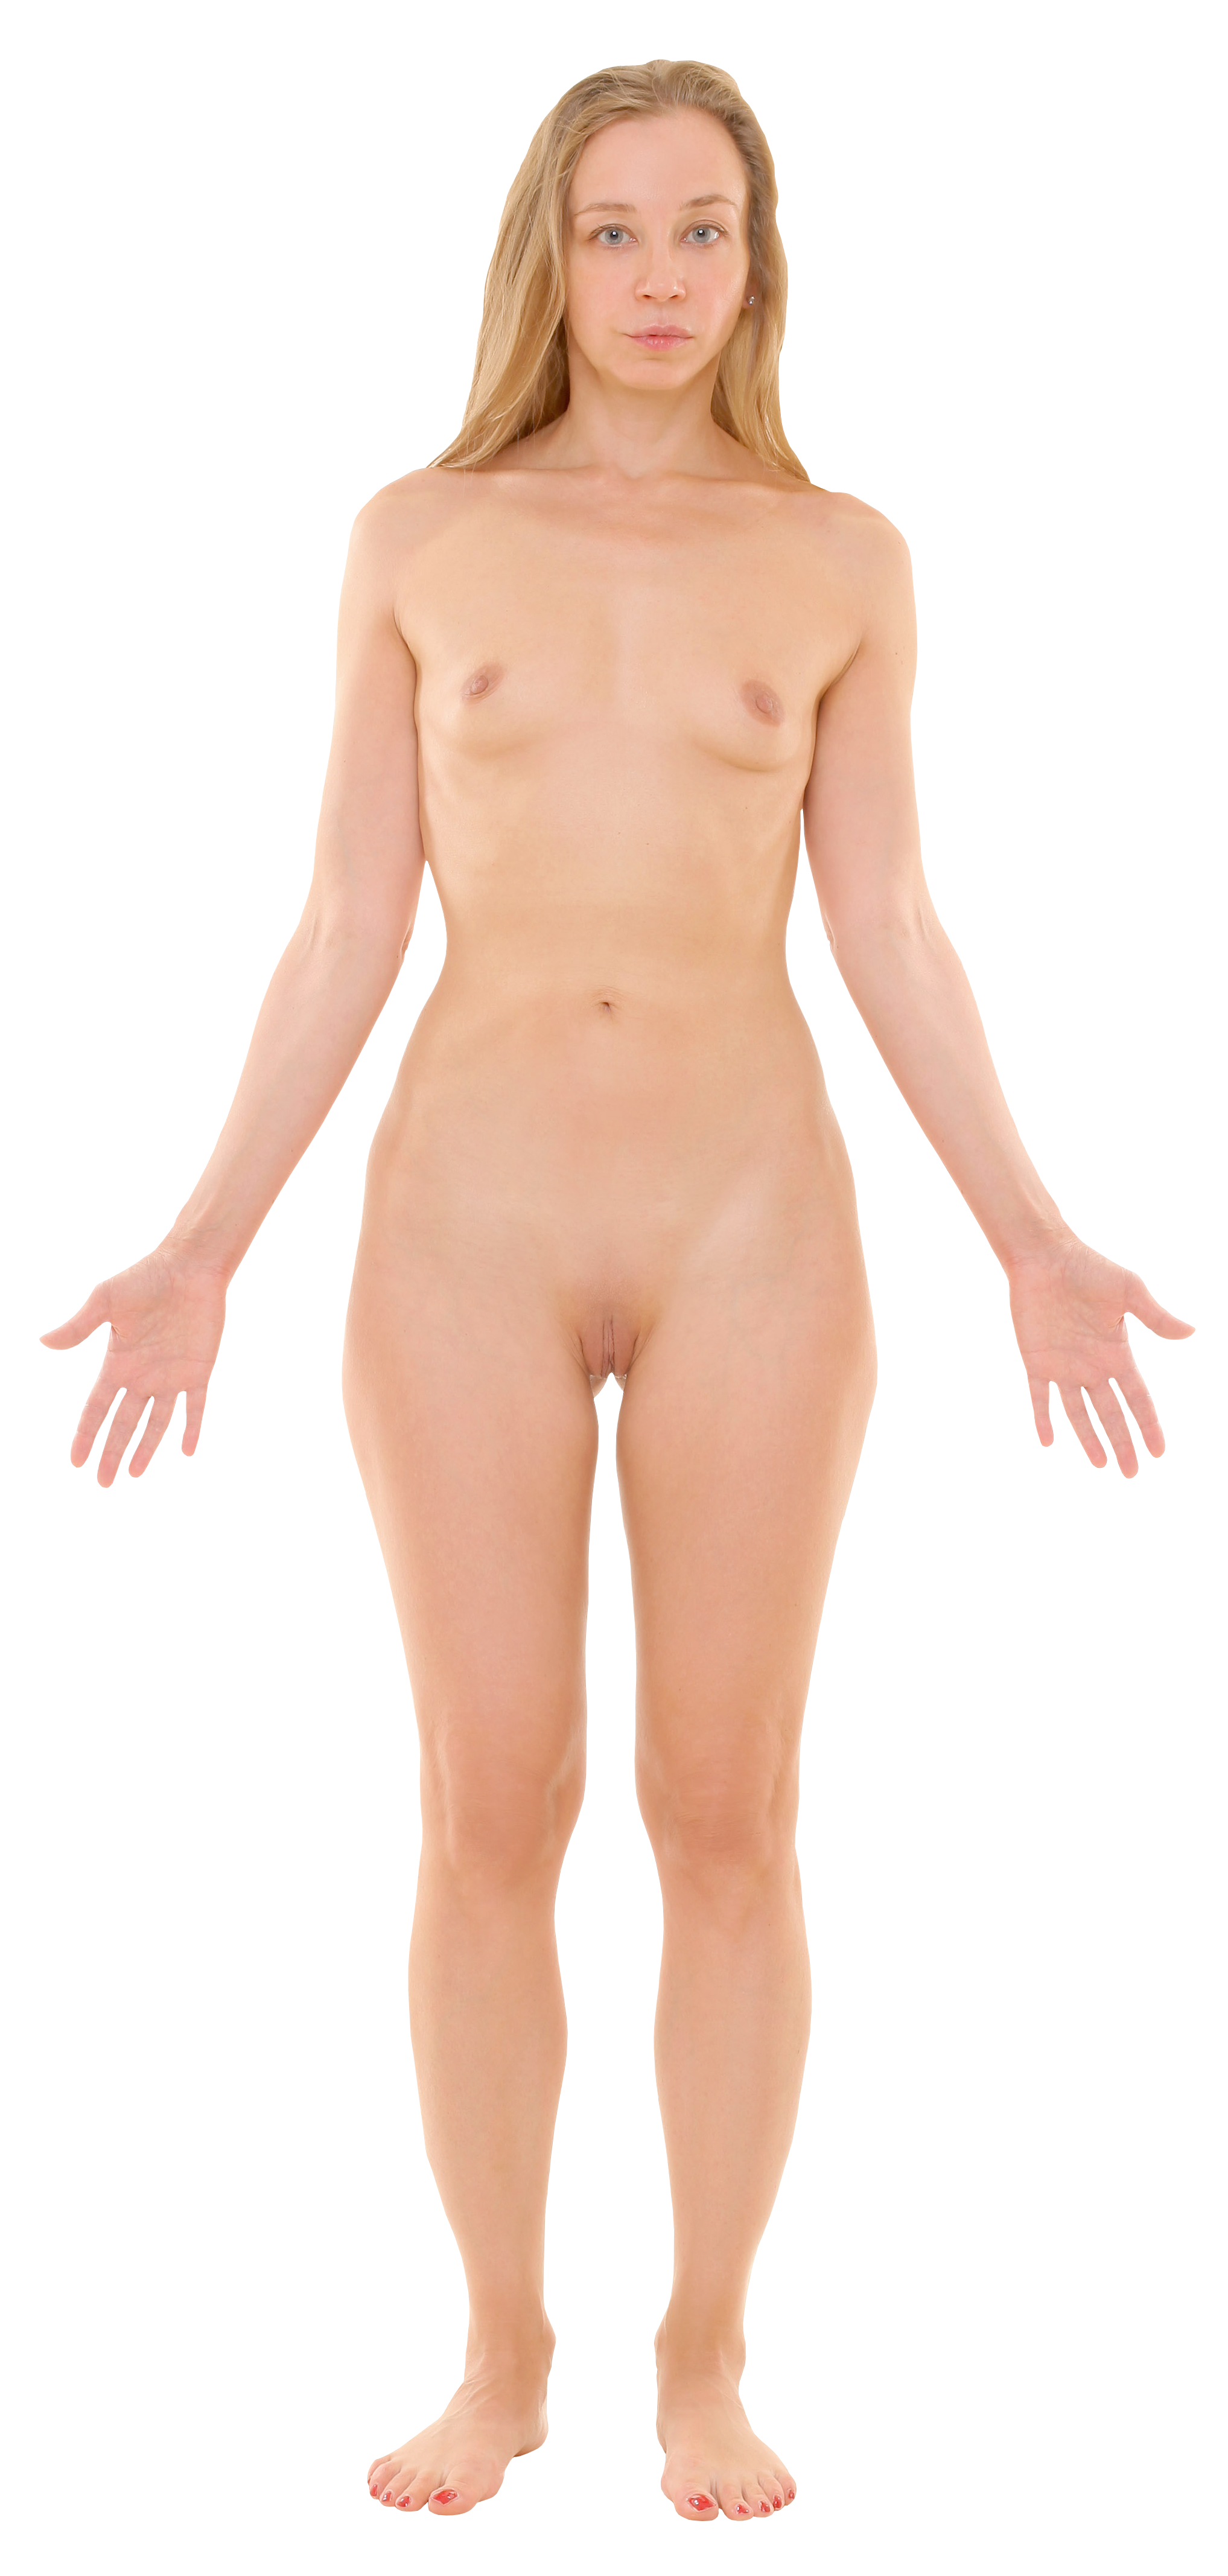 Transparent nude womens wallpaper exploited galleries